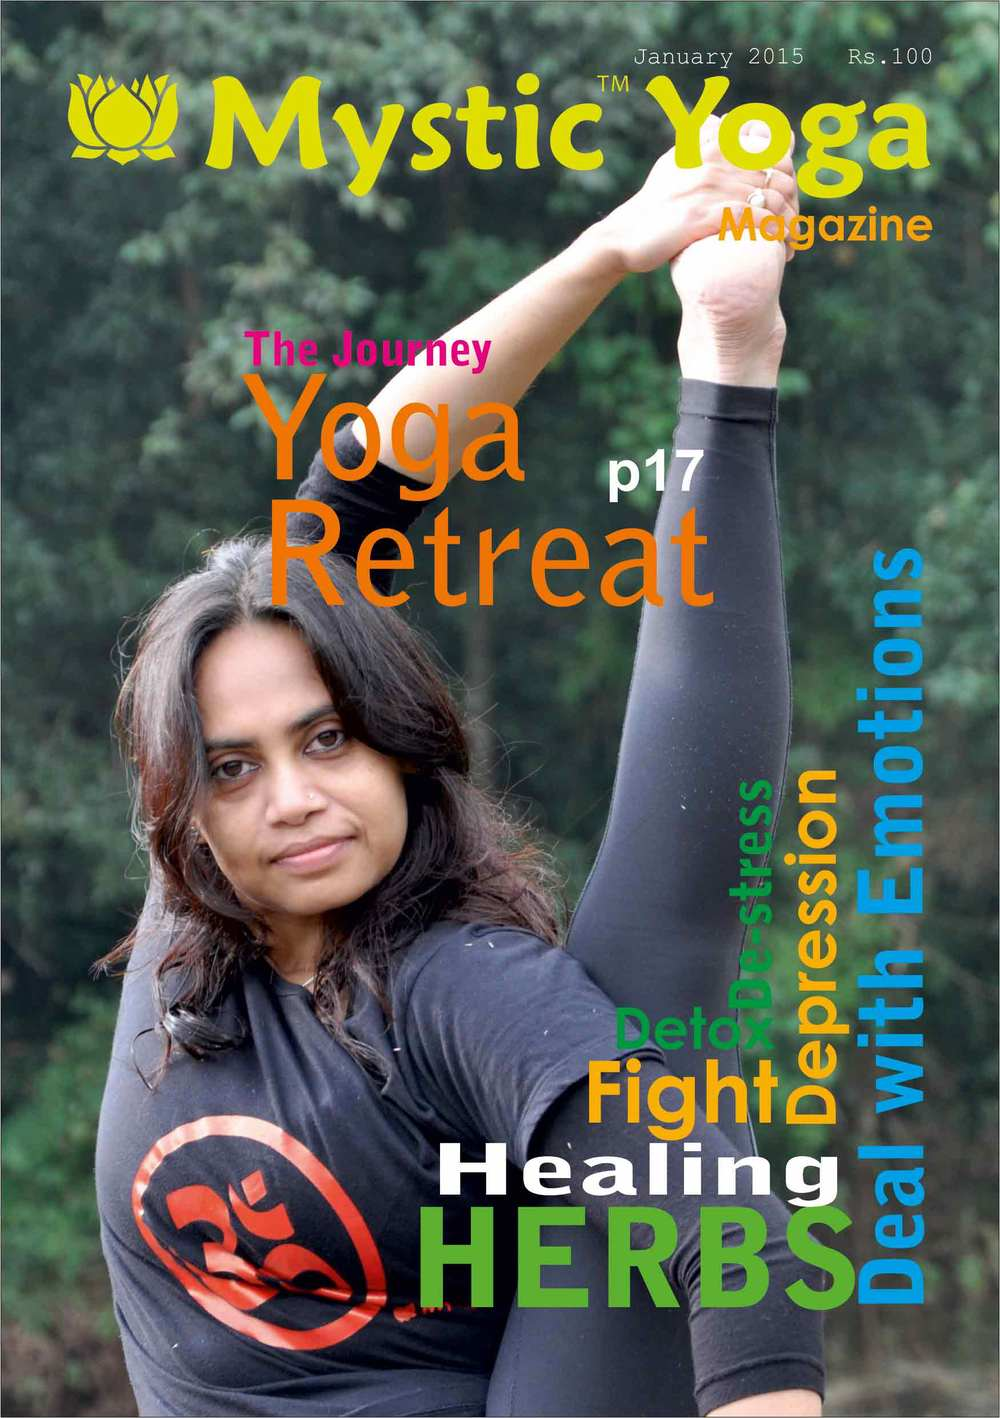 Mystic Yoga Magazine - January 2015